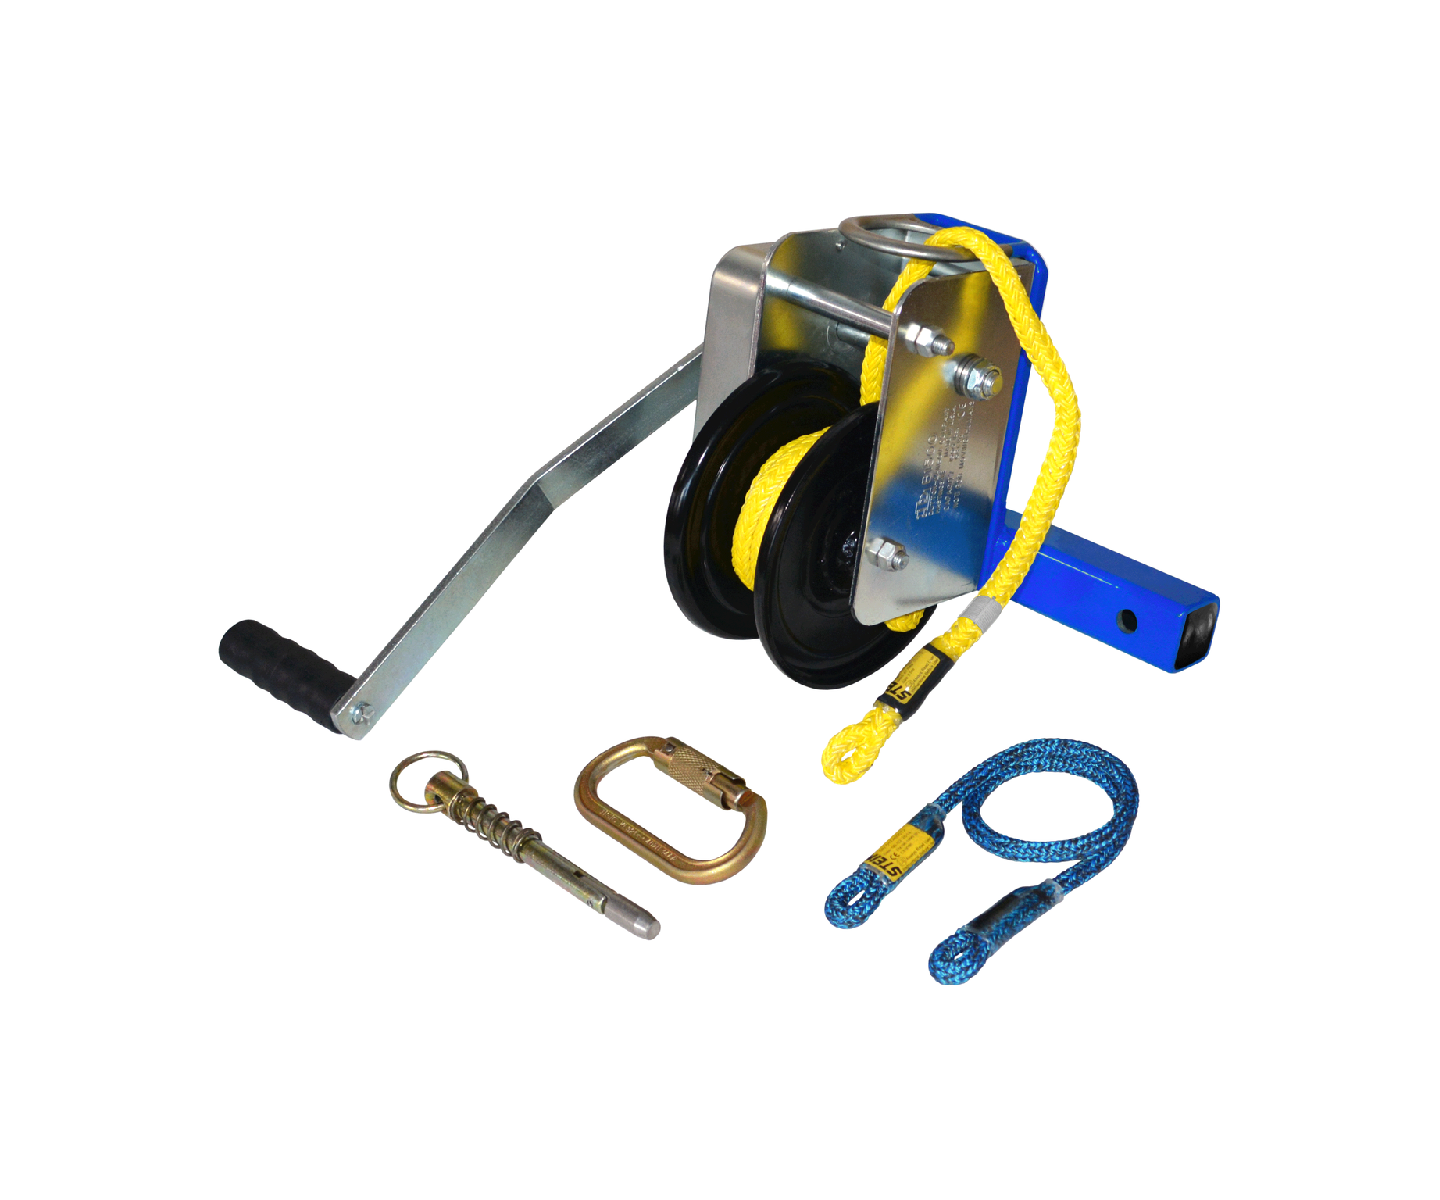 Stein RC winch (for use with RCW3001 & RCW3002)